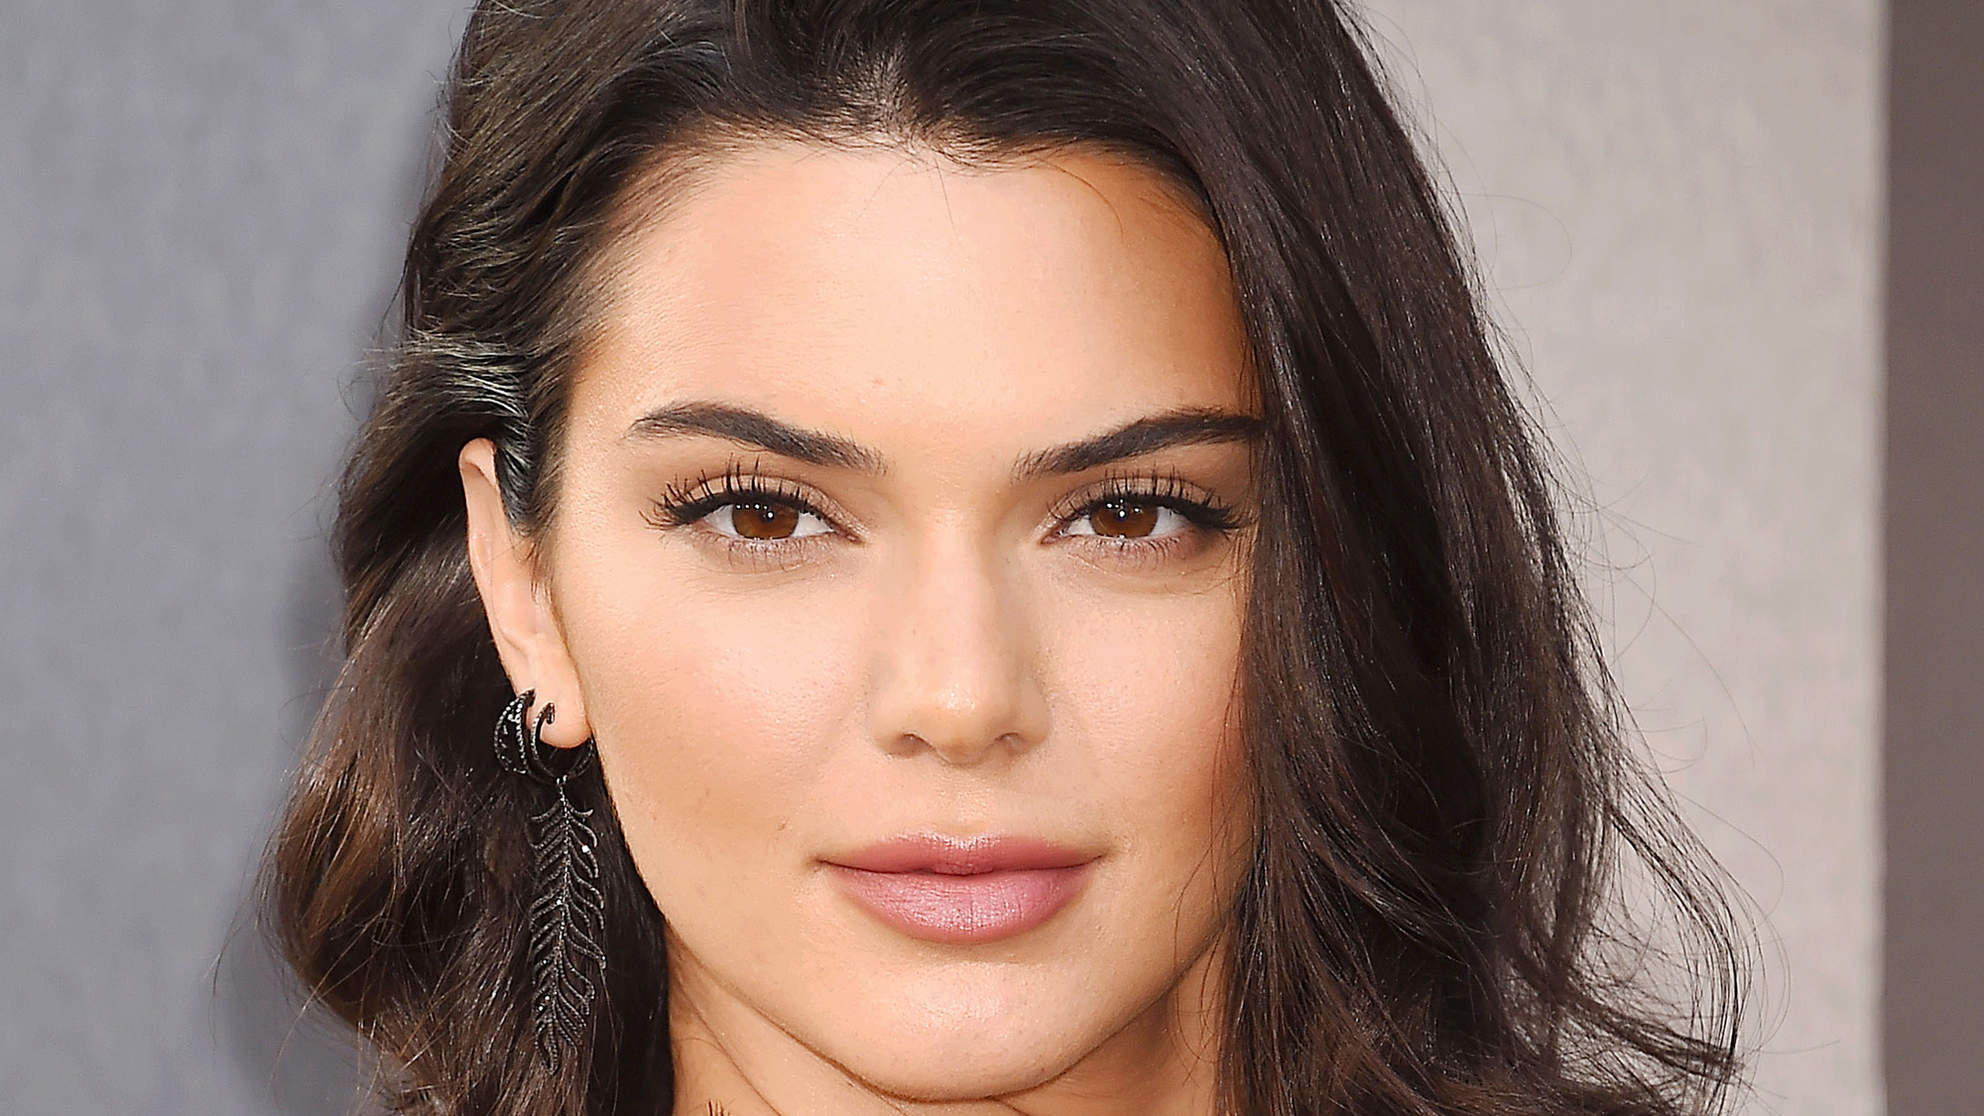 Kendall Jenner's New Adidas Ad Makes Us Question Whether She's Really Venus, the Goddess of Love